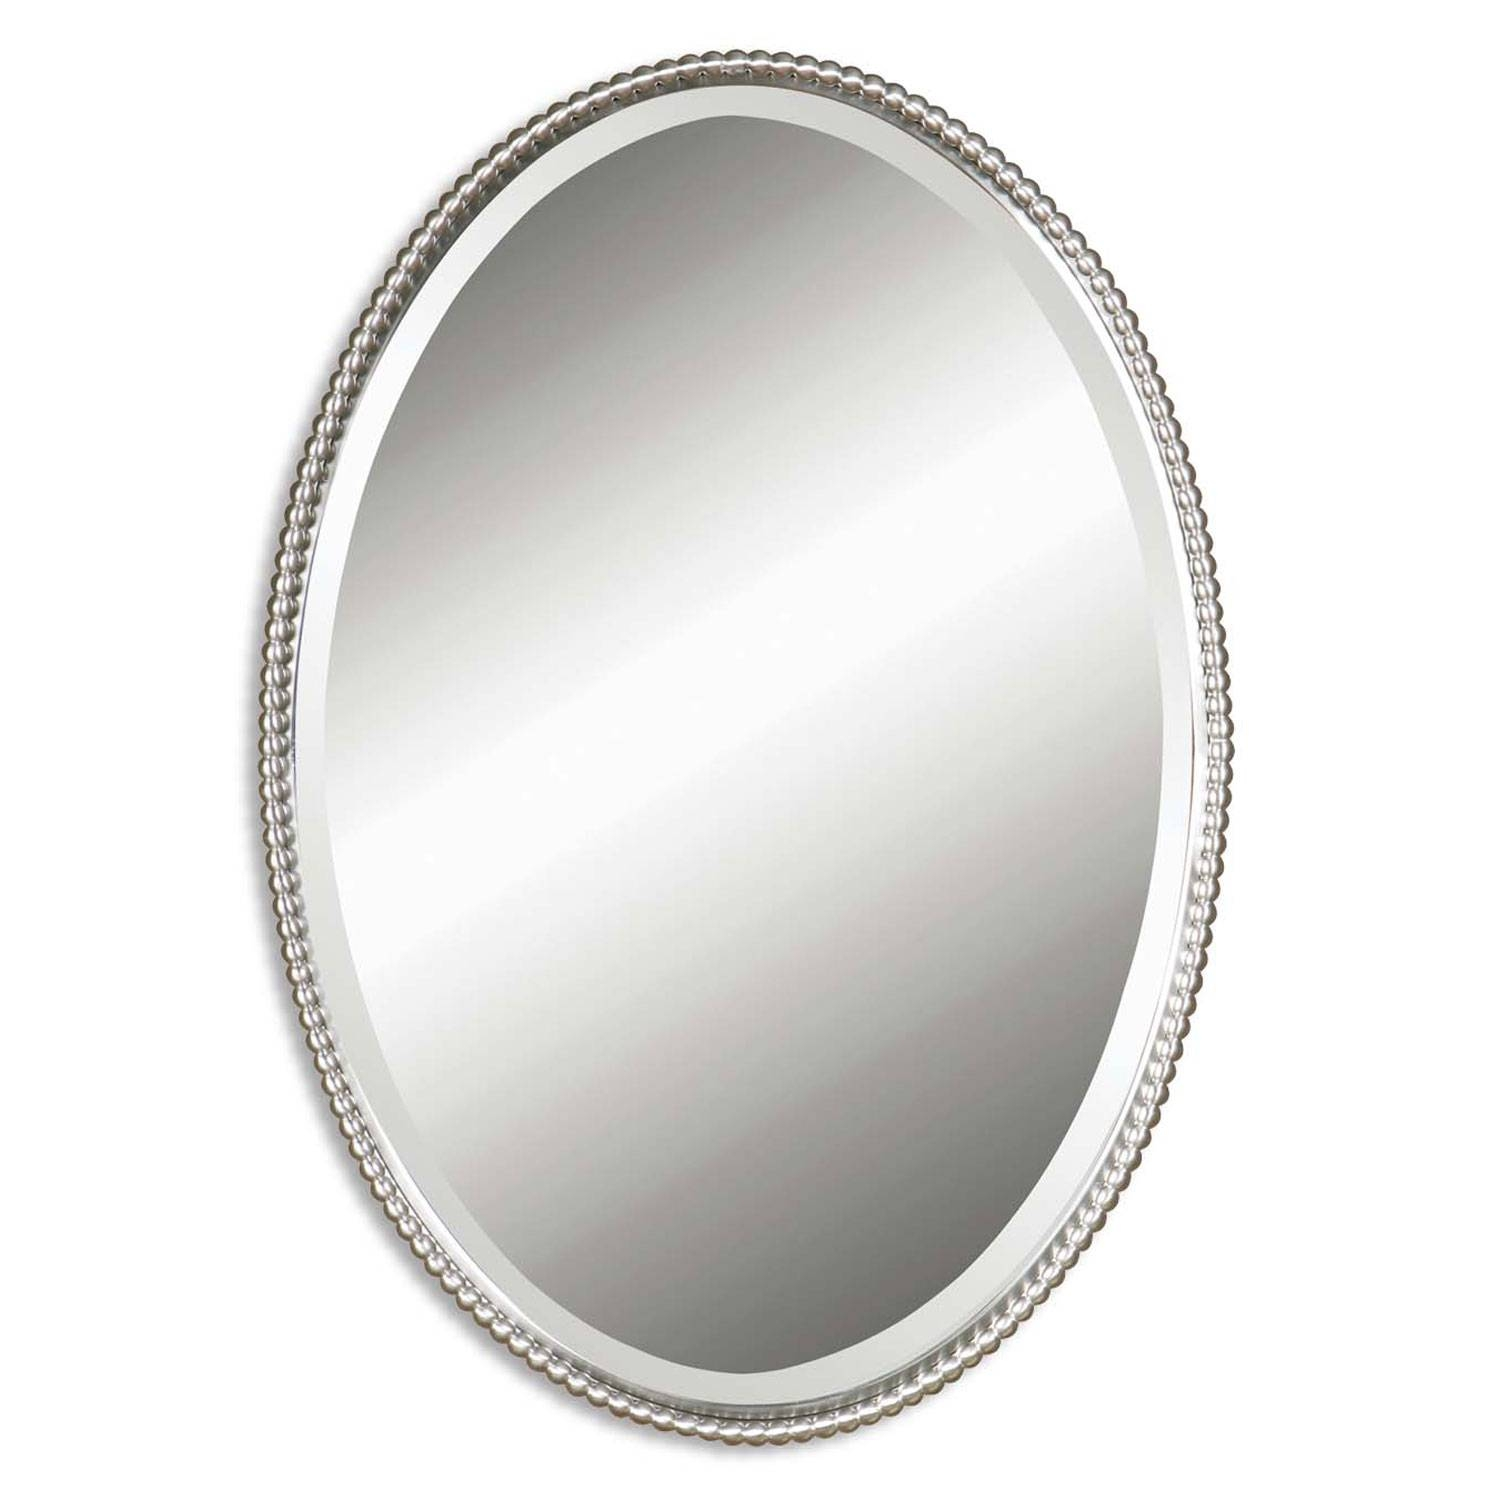 Sherise Brushed Nickel Oval Mirror Uttermost Wall Mirror Mirrors Intended For Silver Oval Mirrors (View 19 of 25)